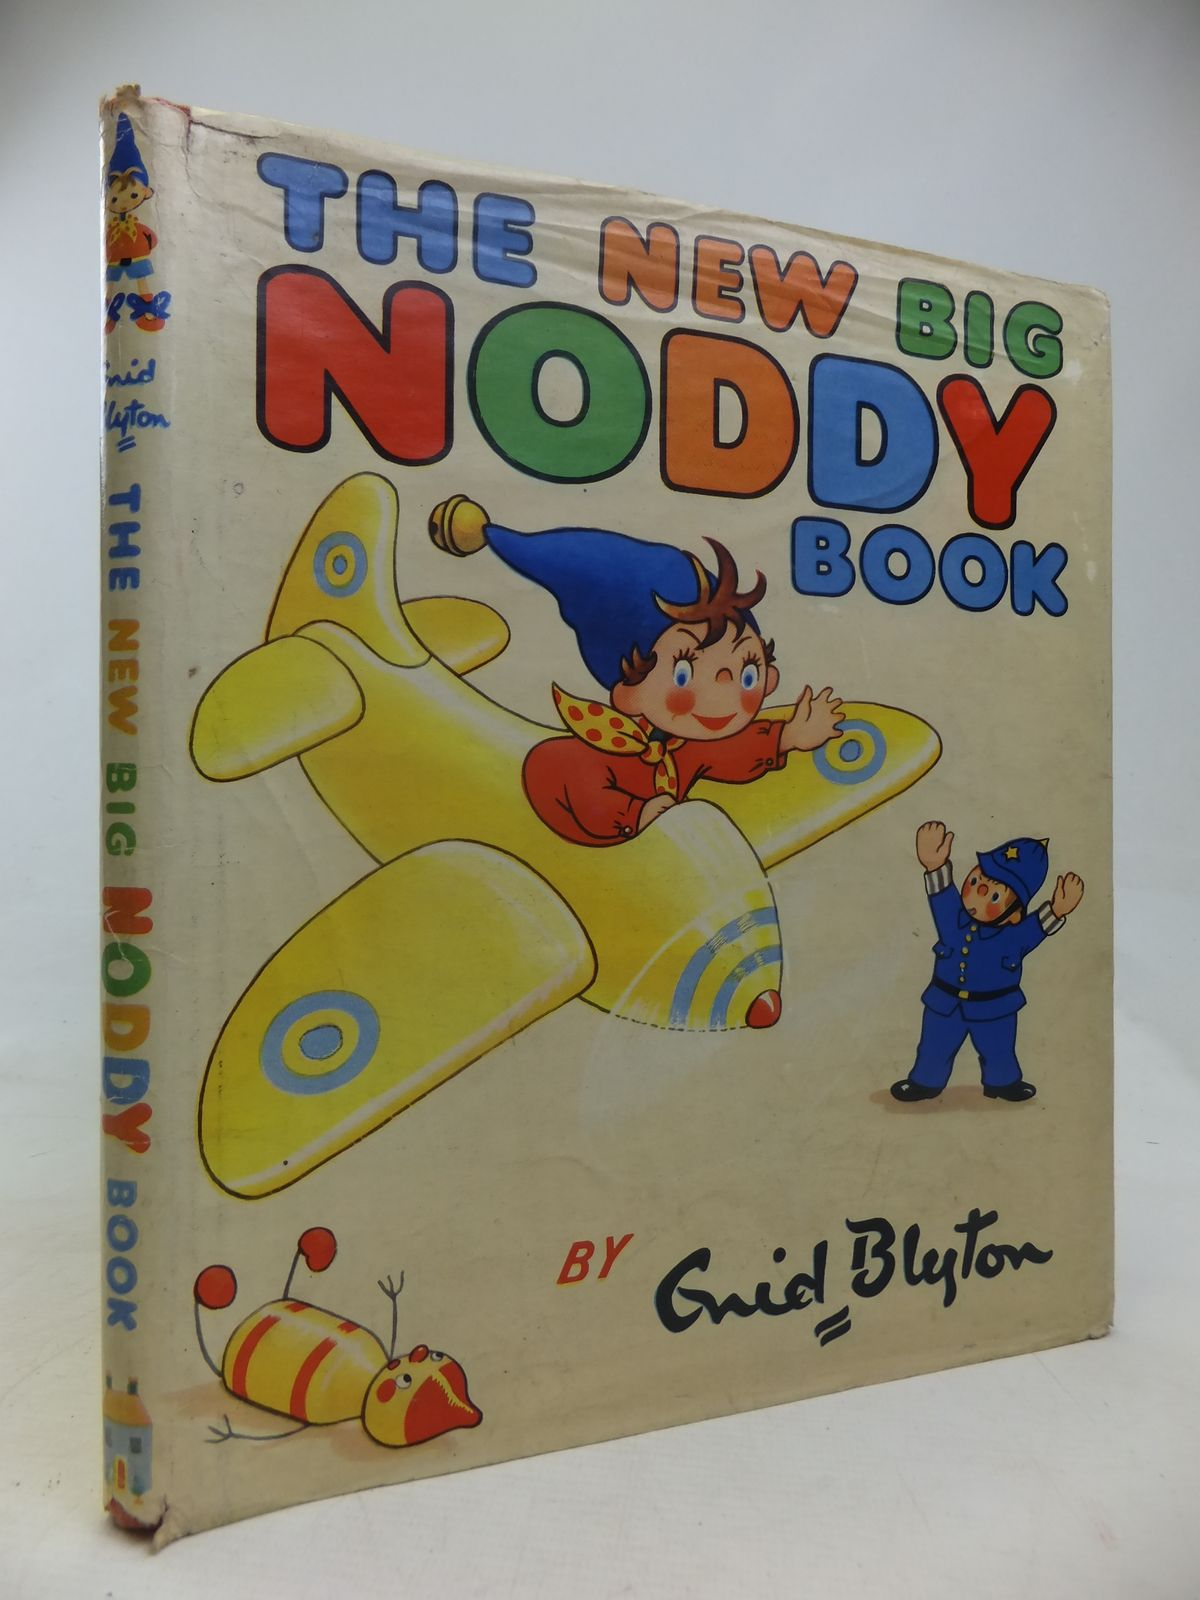 Photo of THE NEW BIG NODDY BOOK- Stock Number: 2116910